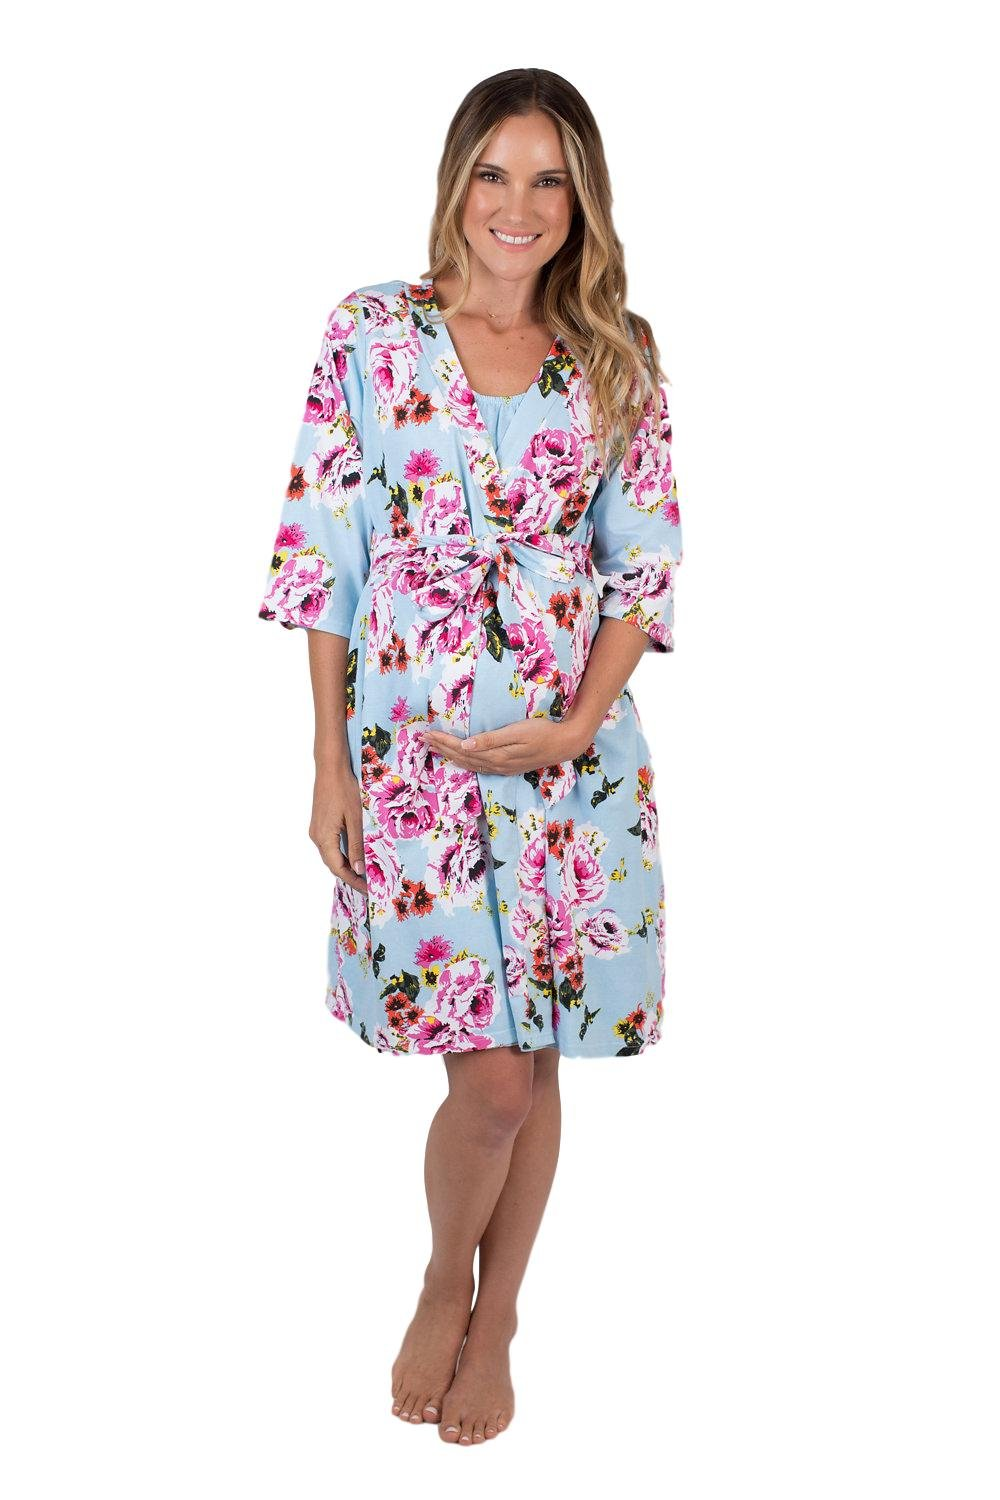 Baby Be Mine Maternity Labor Delivery Nursing Robe Hospital Bag Must Have (L/XL pre Pregnancy 12-18, Isla)